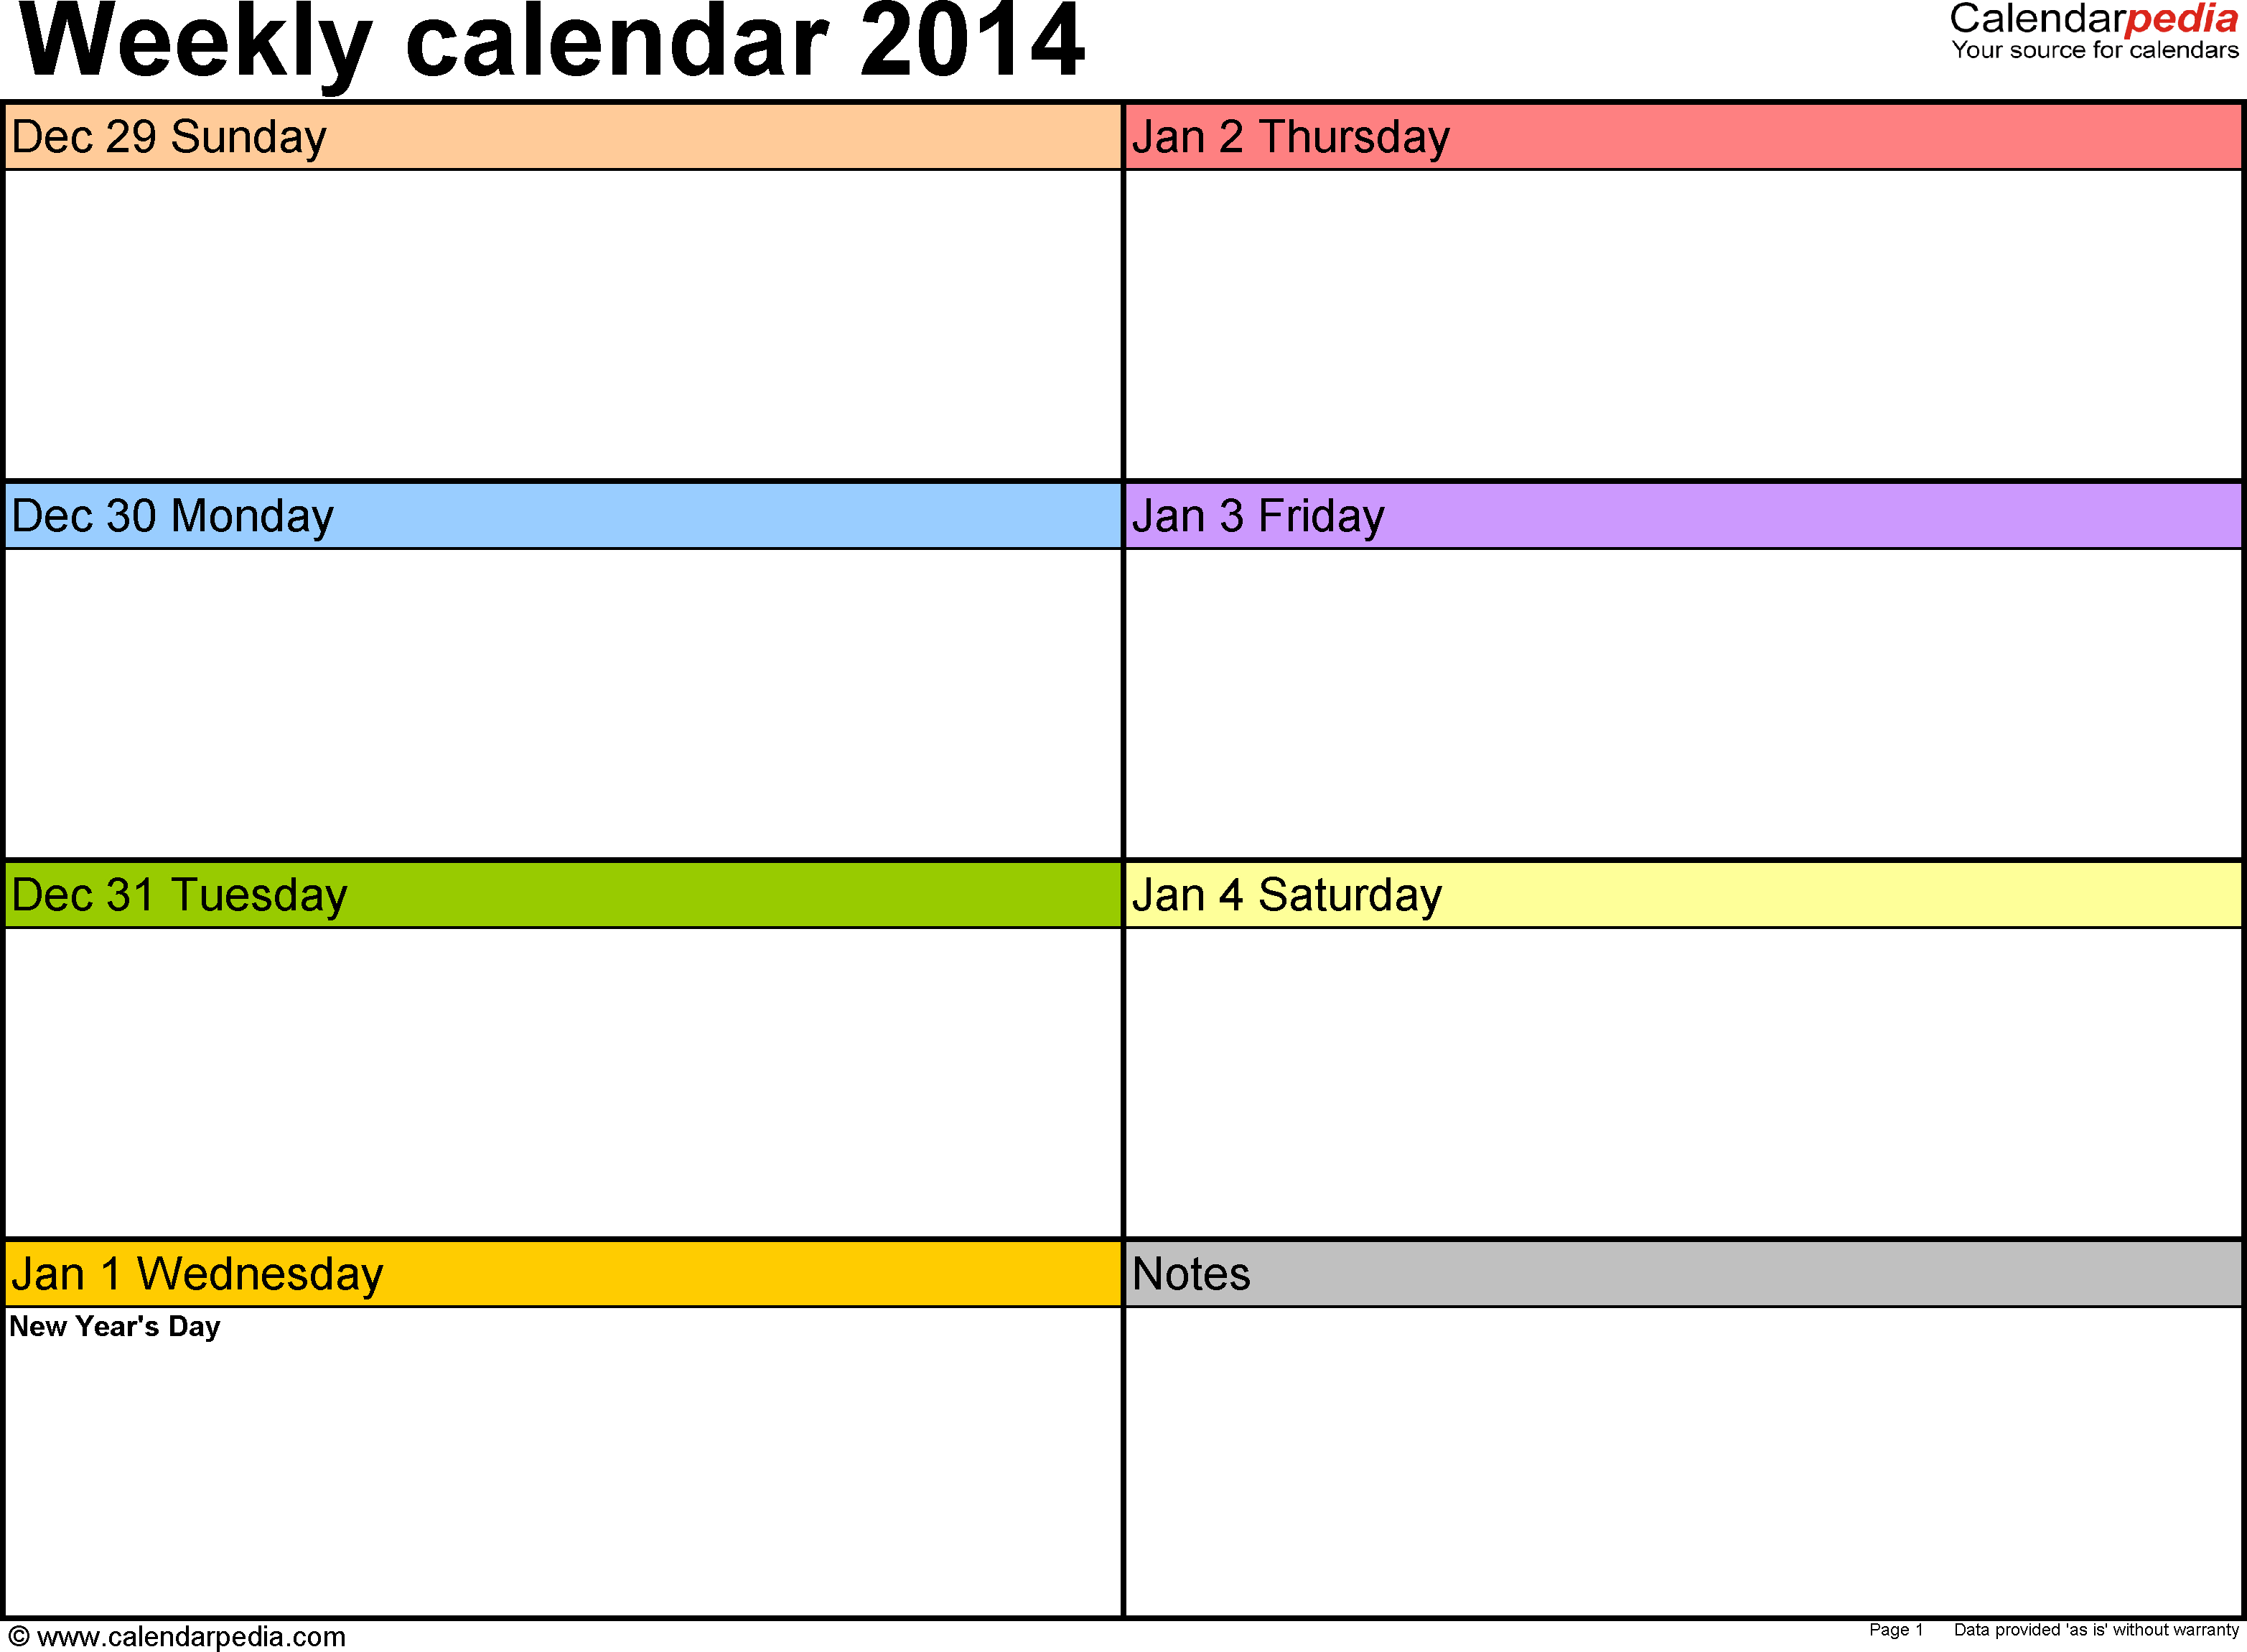 Weekly Calendar 2014 For Word - 4 Free Printable Templates for Printable Work Week Calendar Template